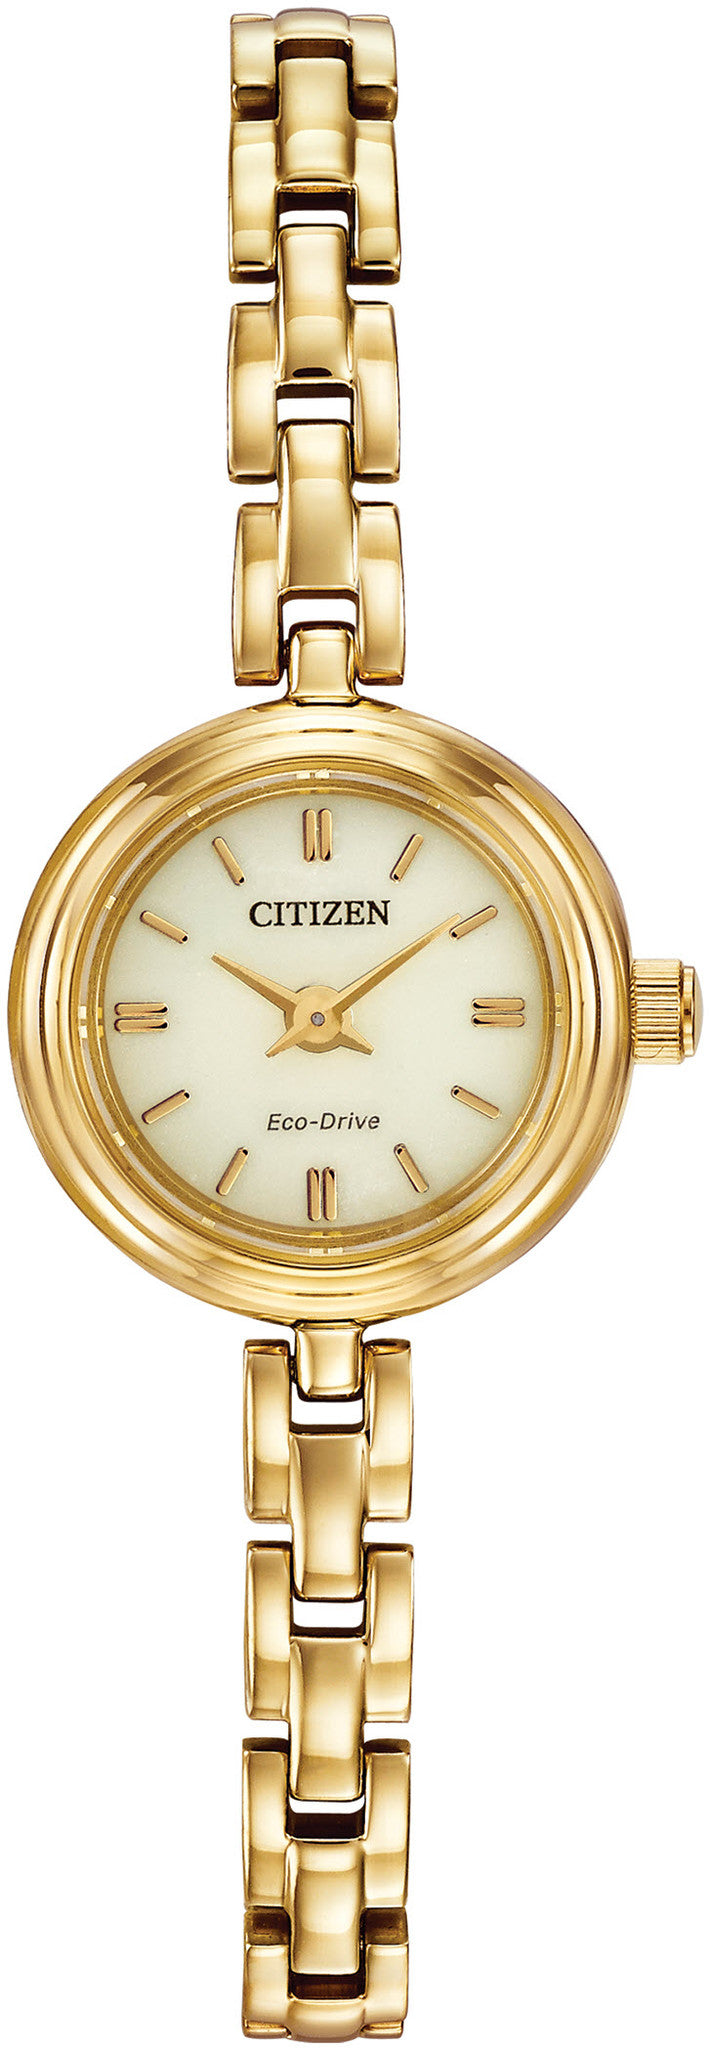 Citizen Watch Eco Drive Ladies Silhouette S